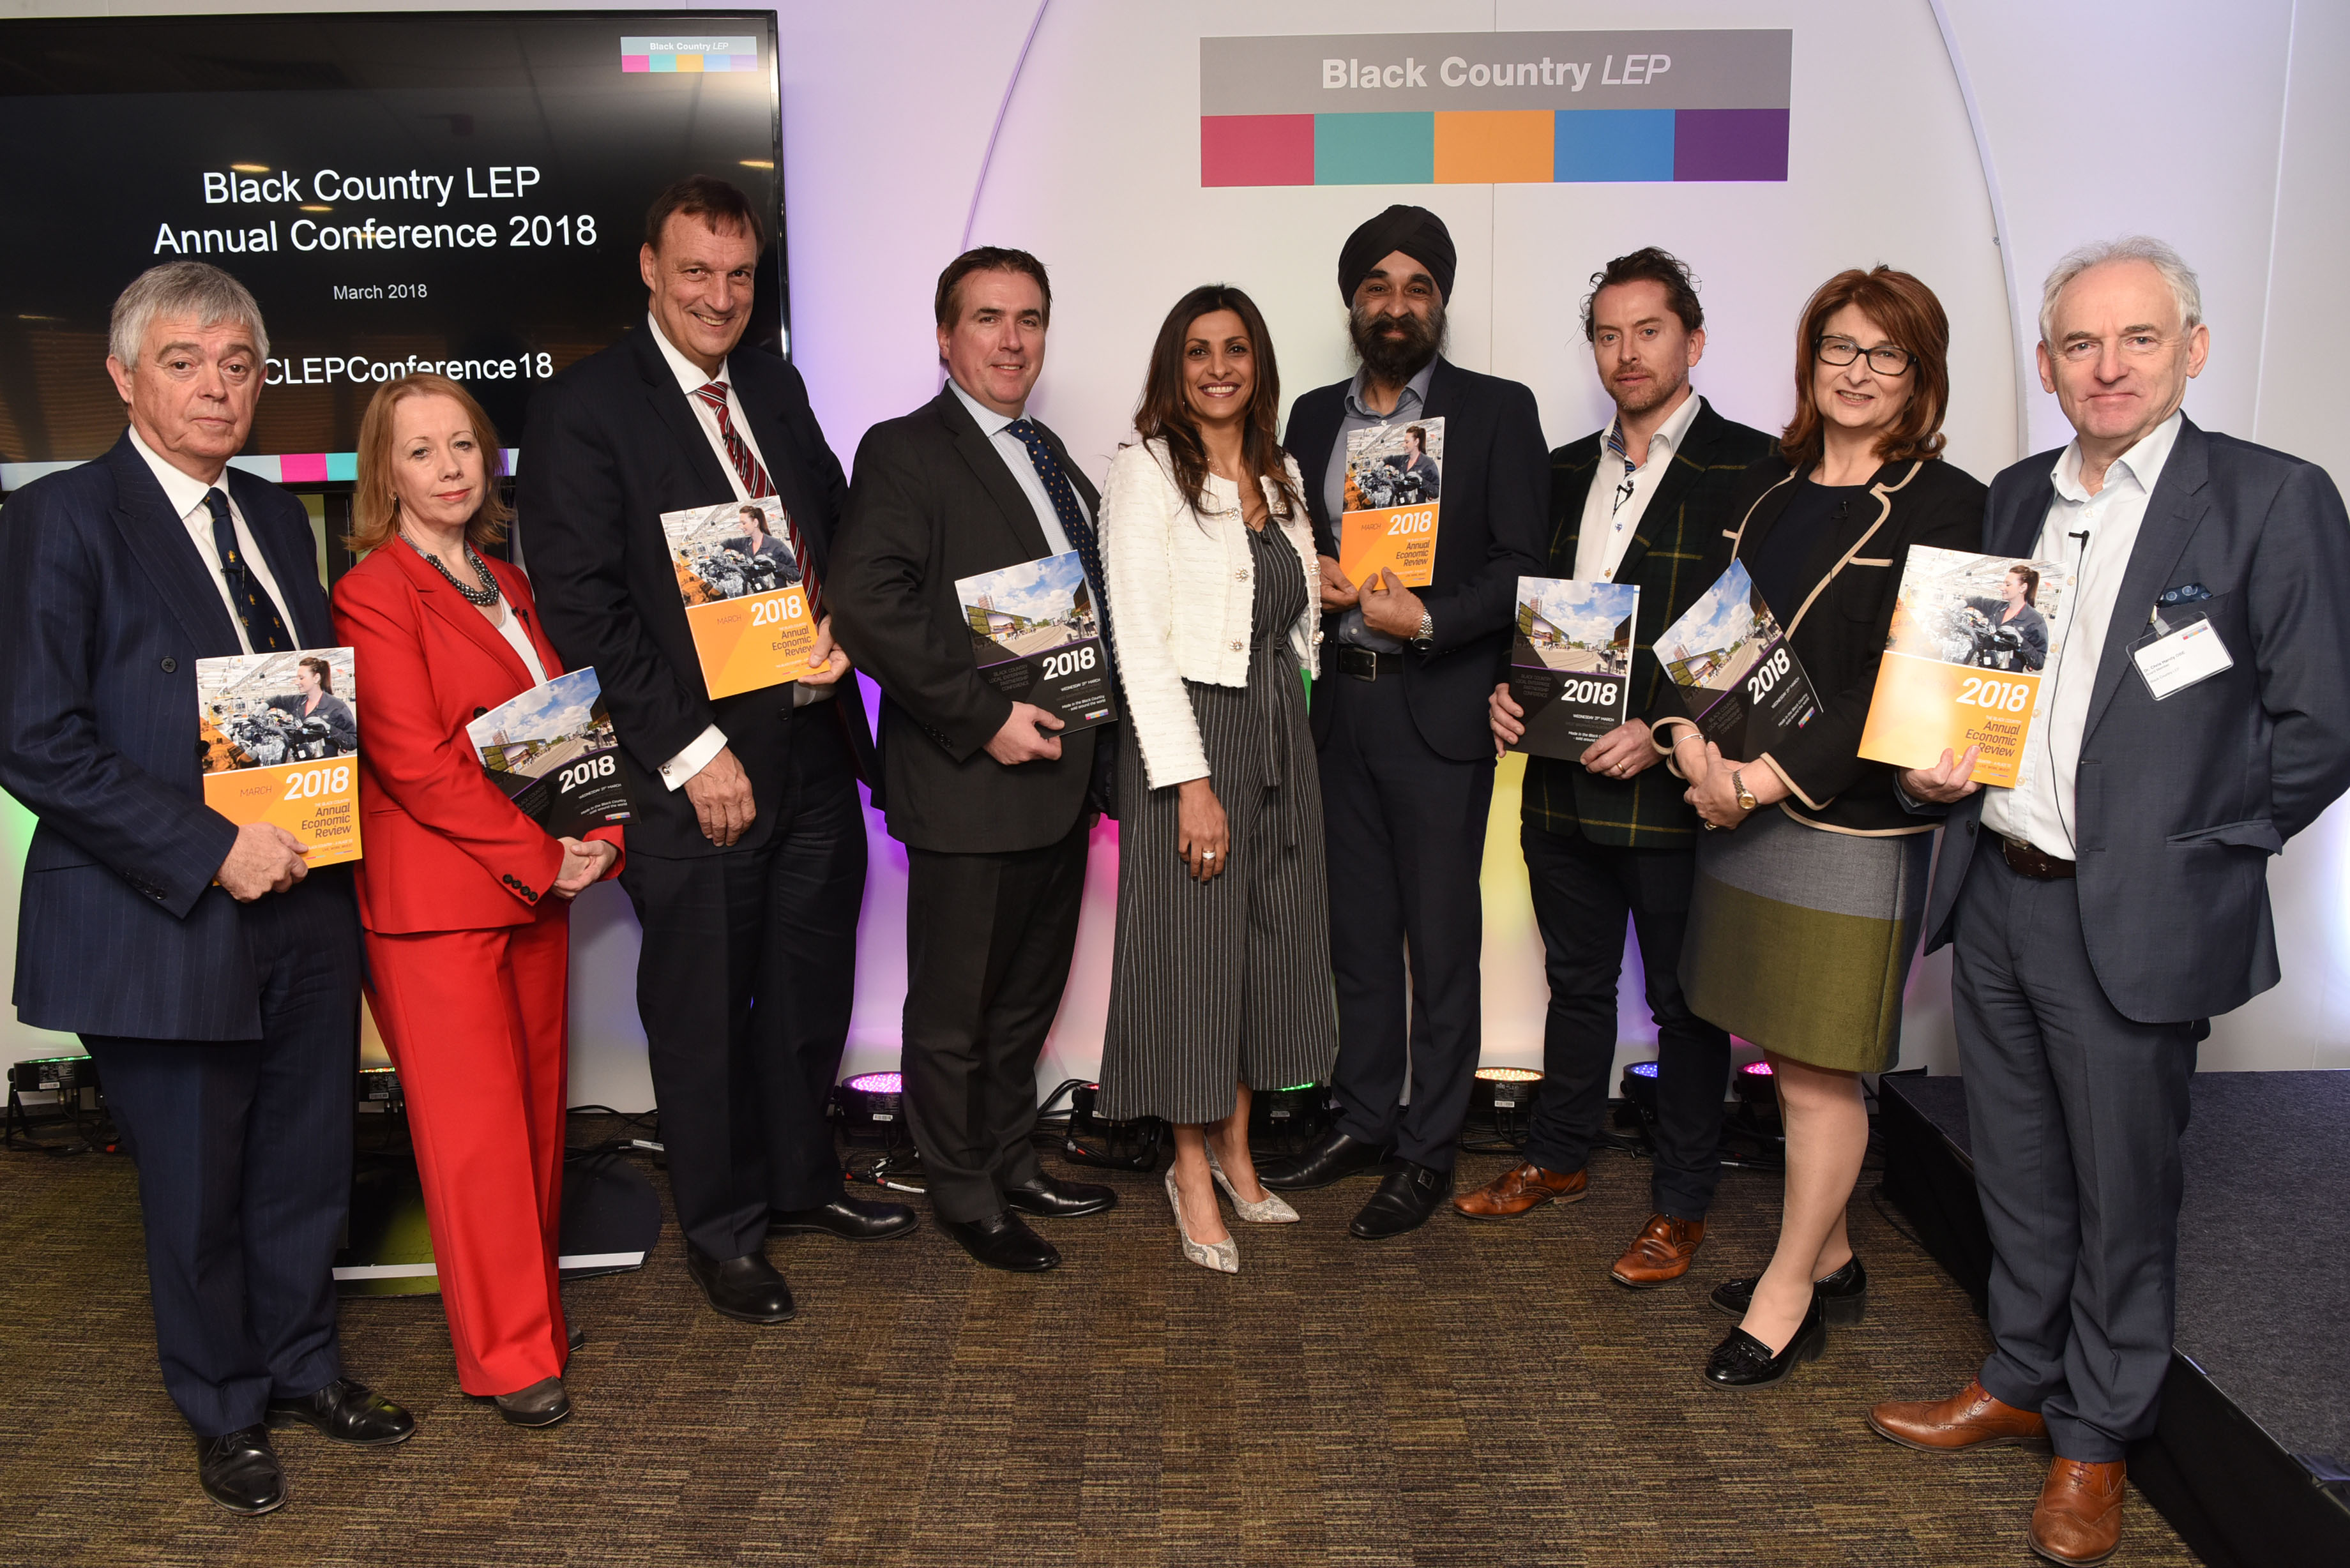 Black Country LEP Conference celebrates continued economic growth